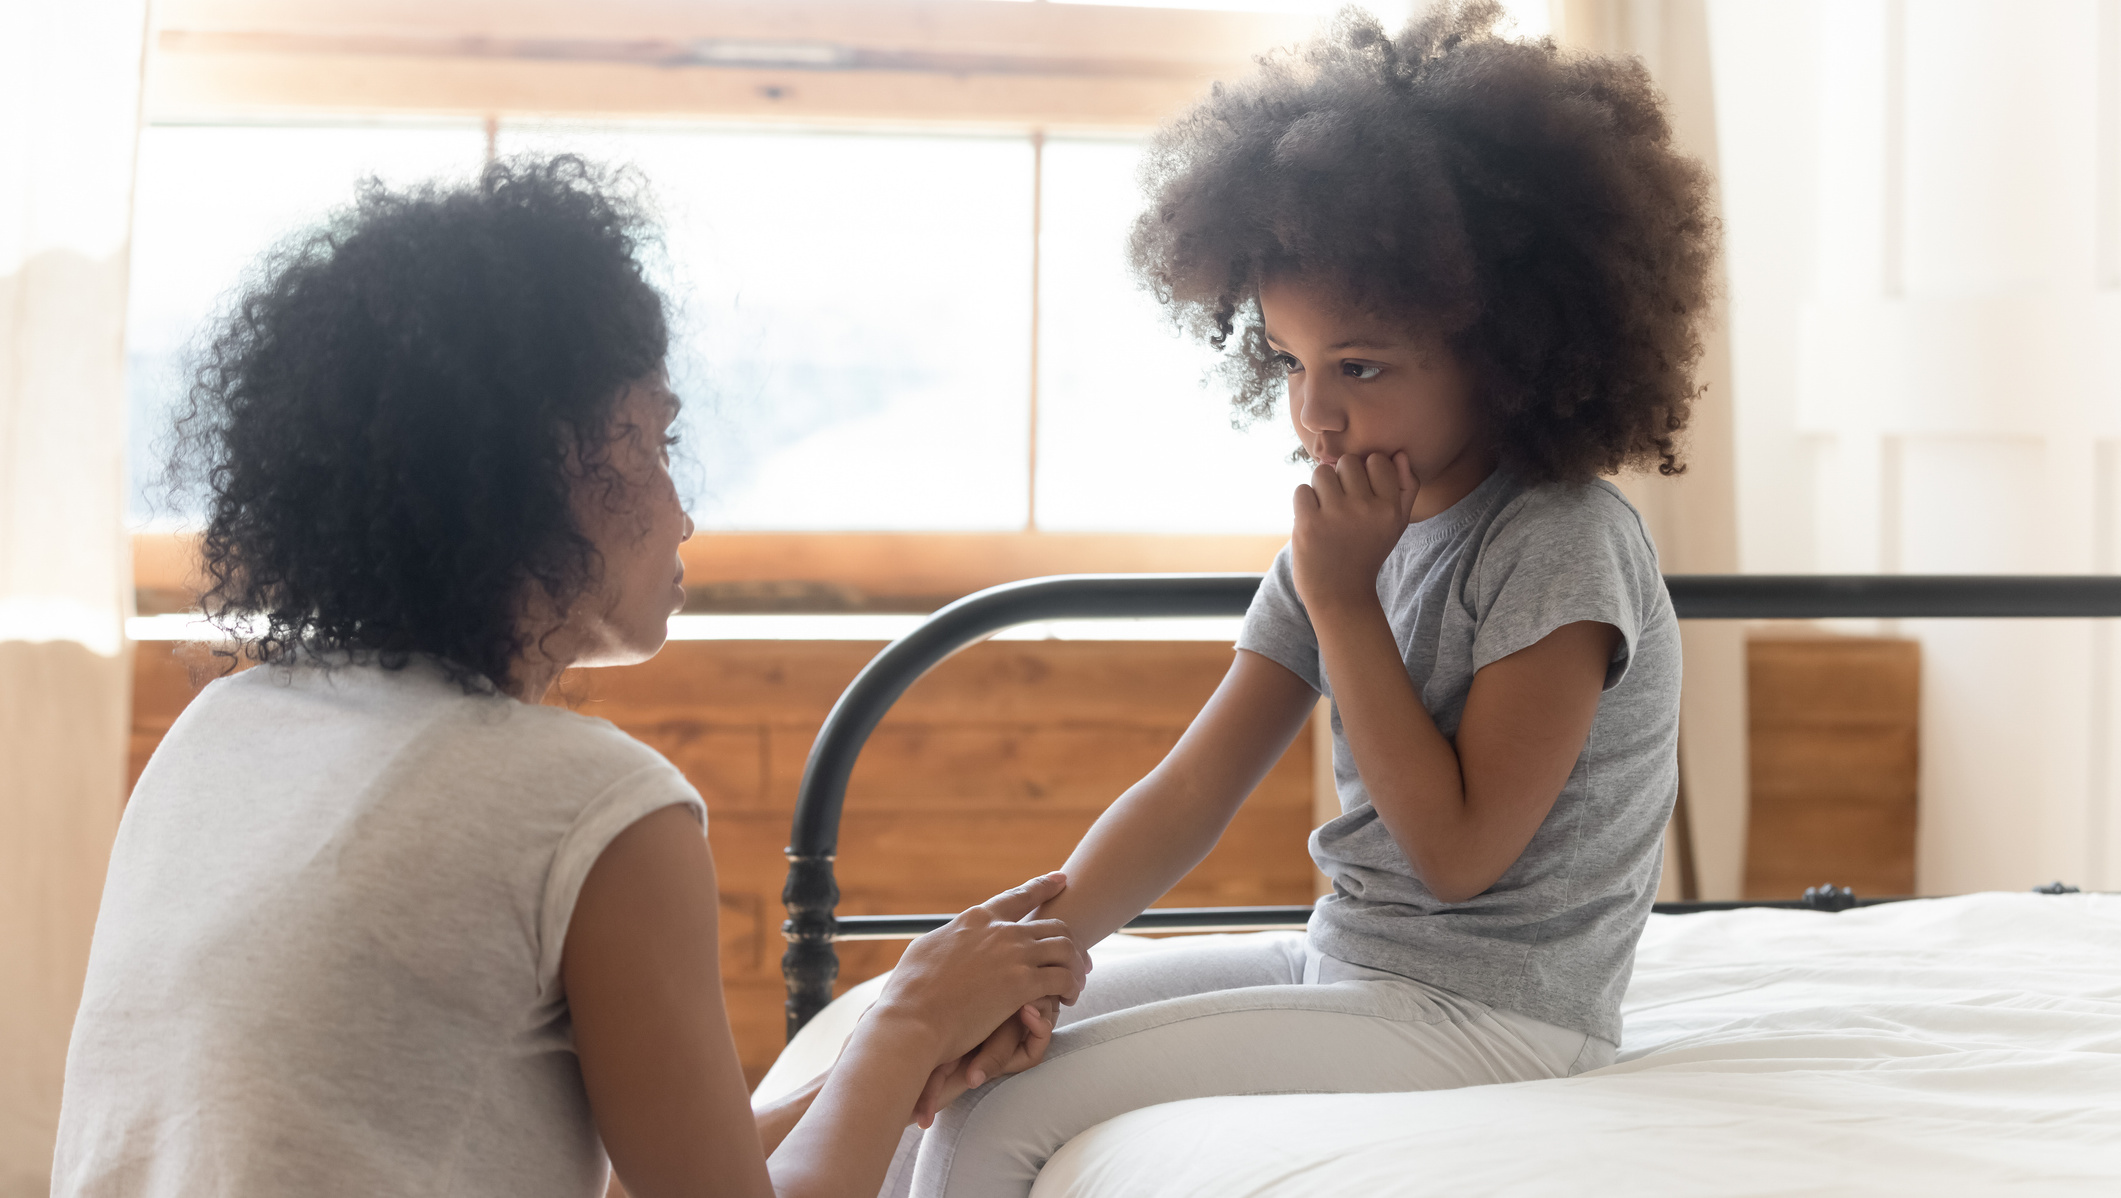 5 Bible Memory Verses for Kids About Self-Control